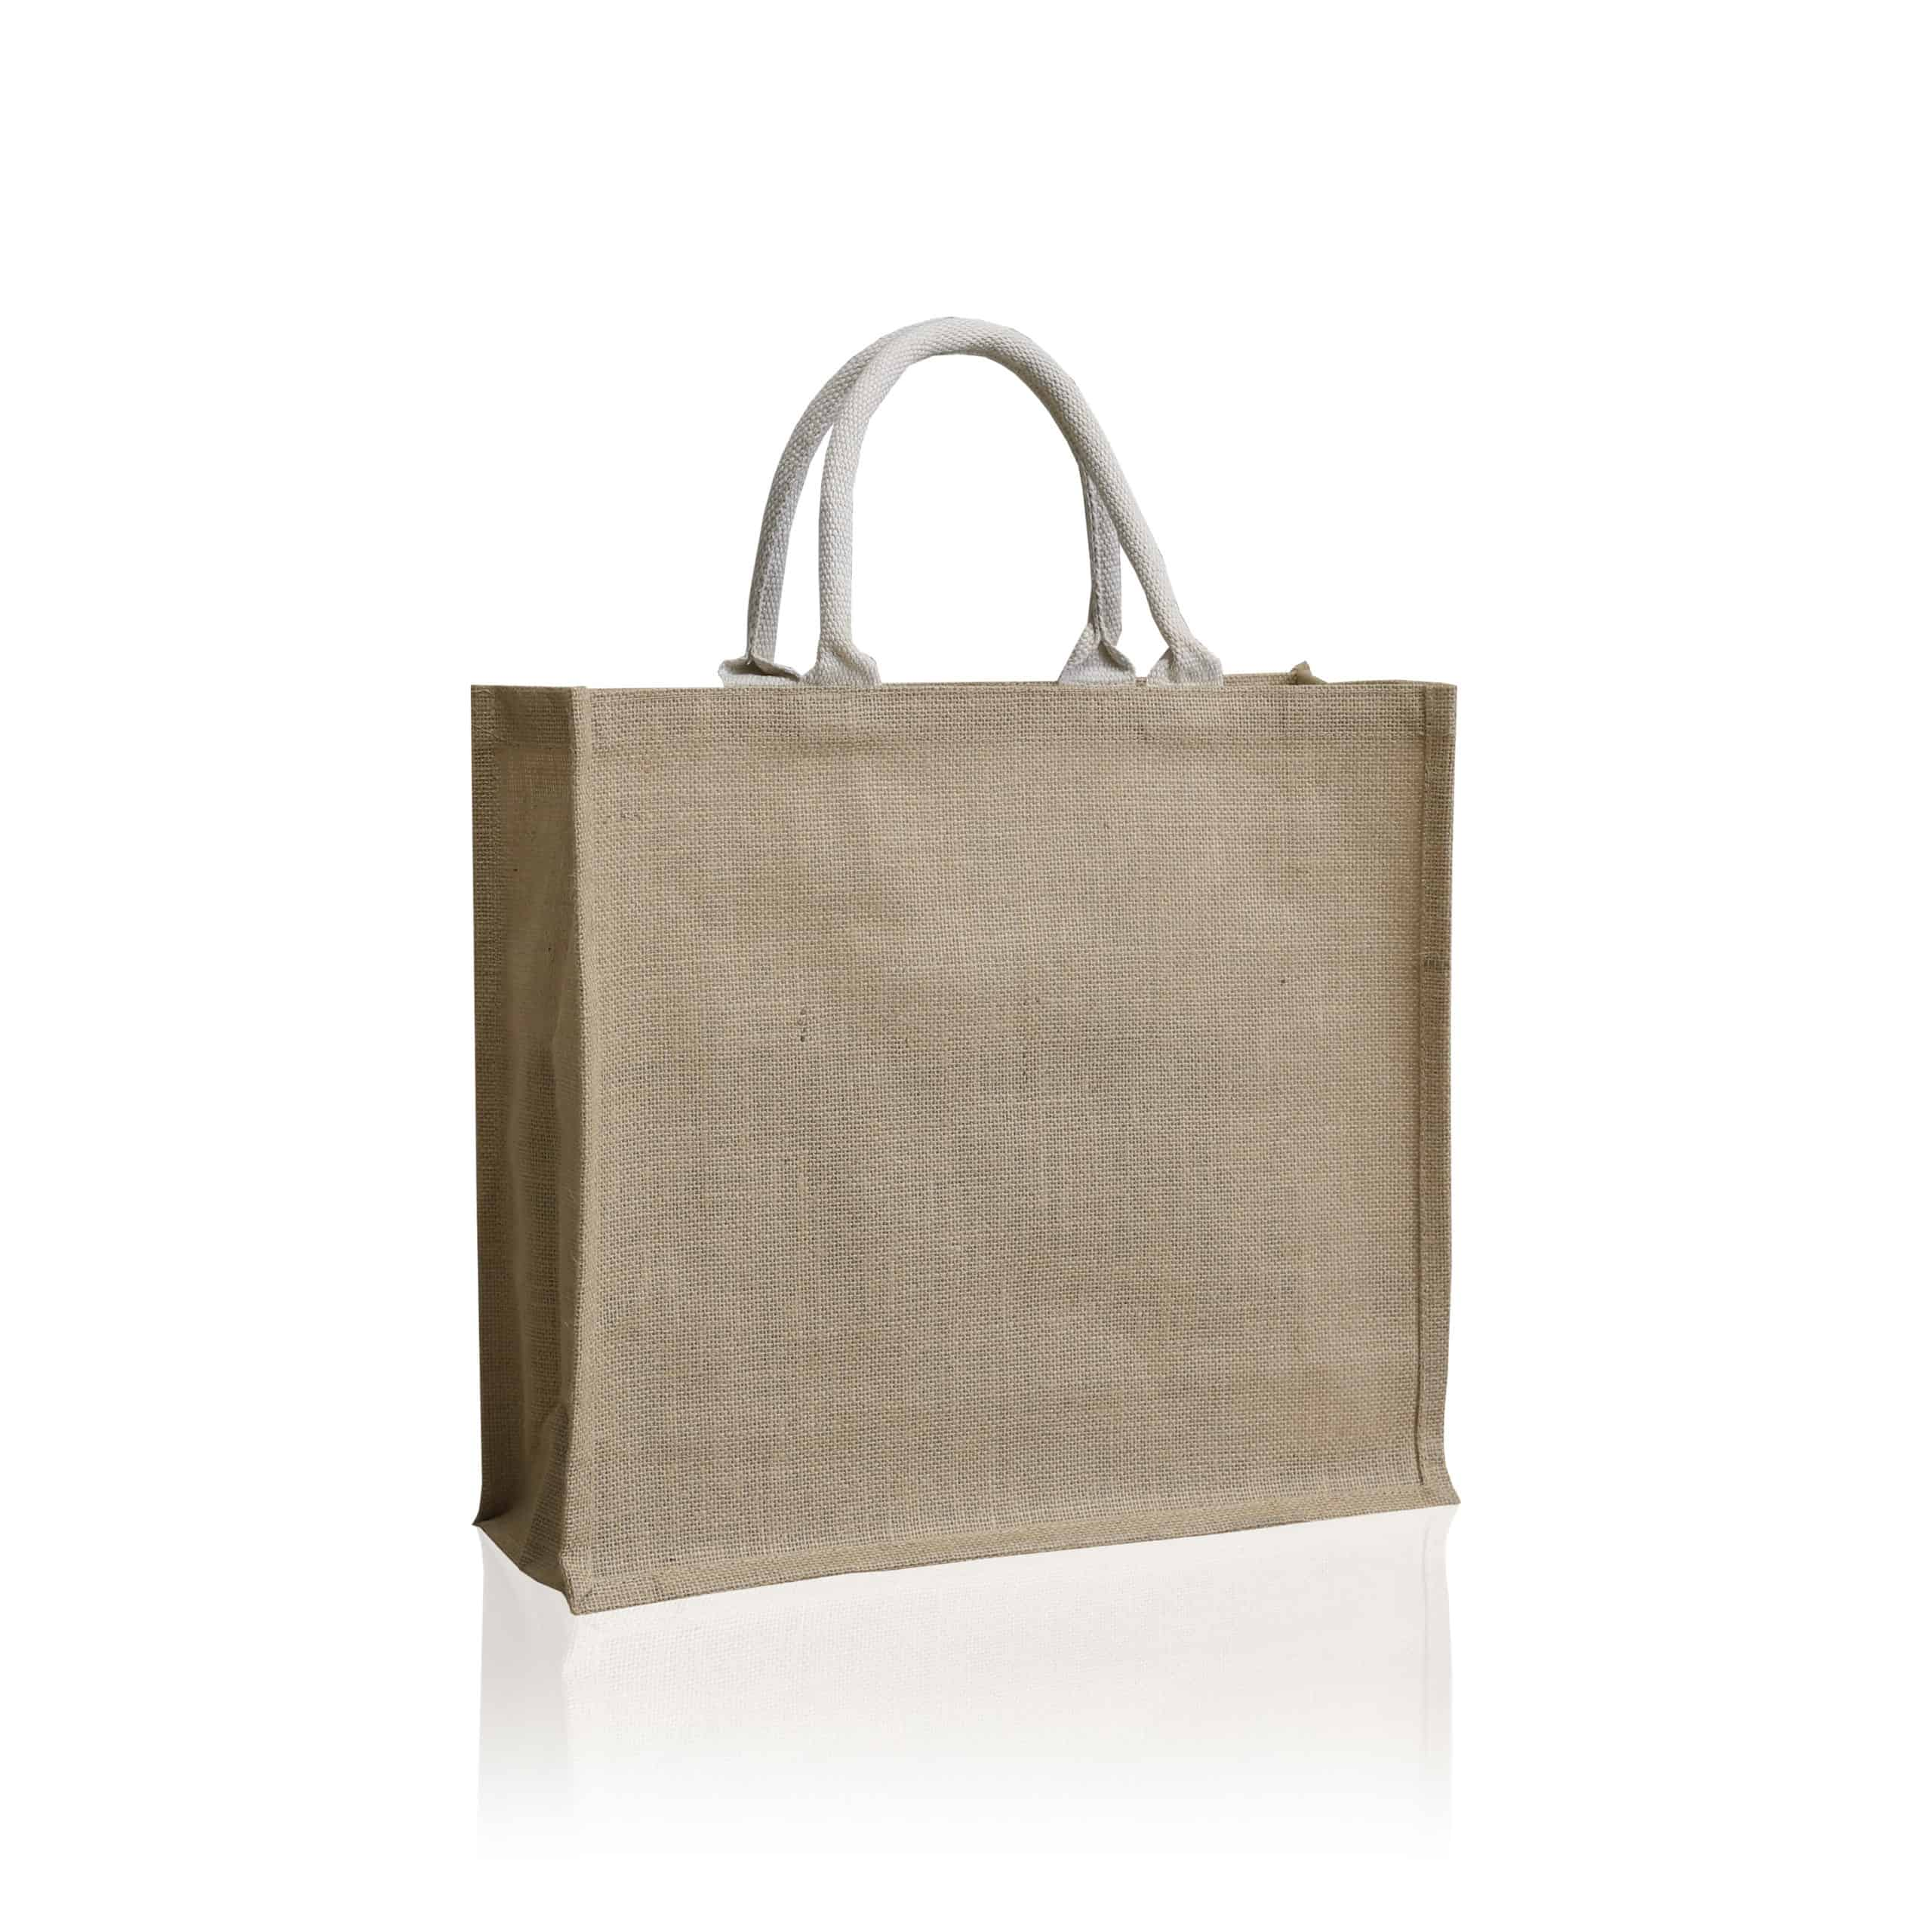 Shopper en jute naturelle